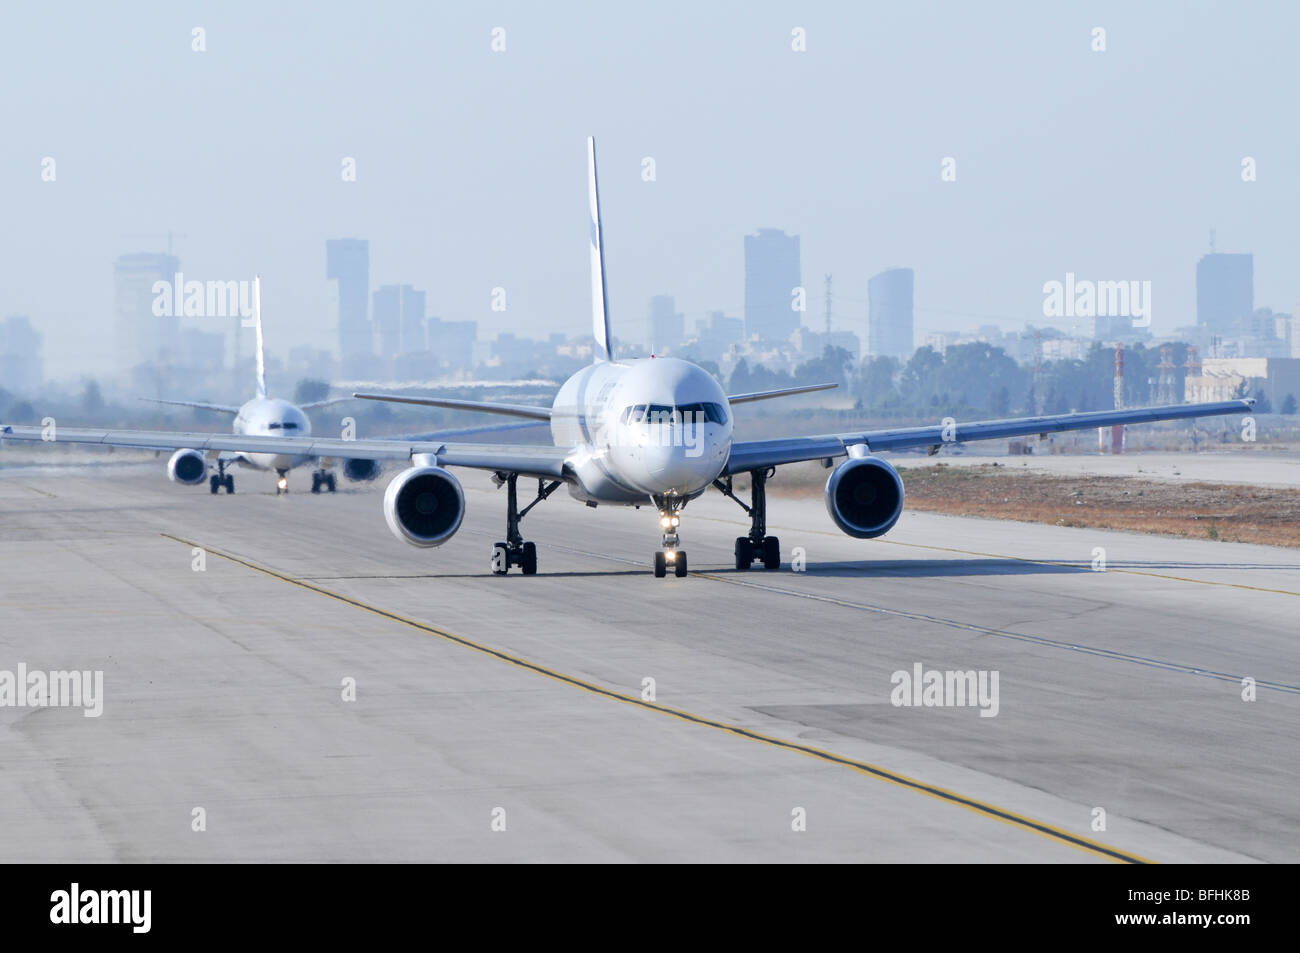 Israel, Ben-Gurion international Airport passenger jets lined up for takeoff - Stock Image